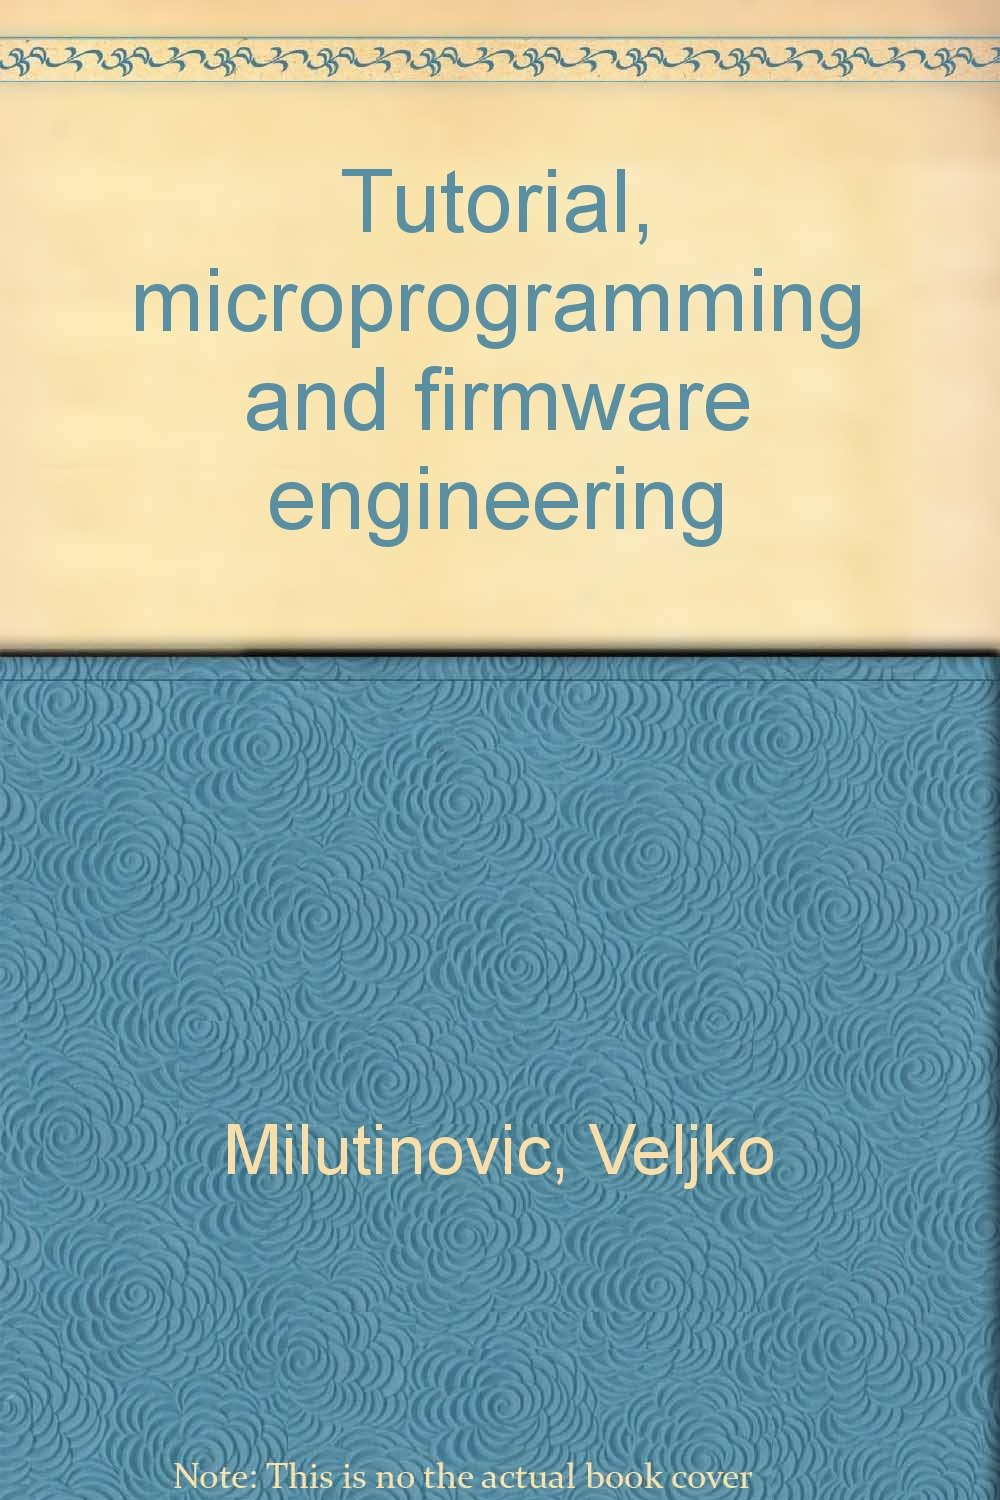 Tutorial, microprogramming and firmware engineering: veljko.